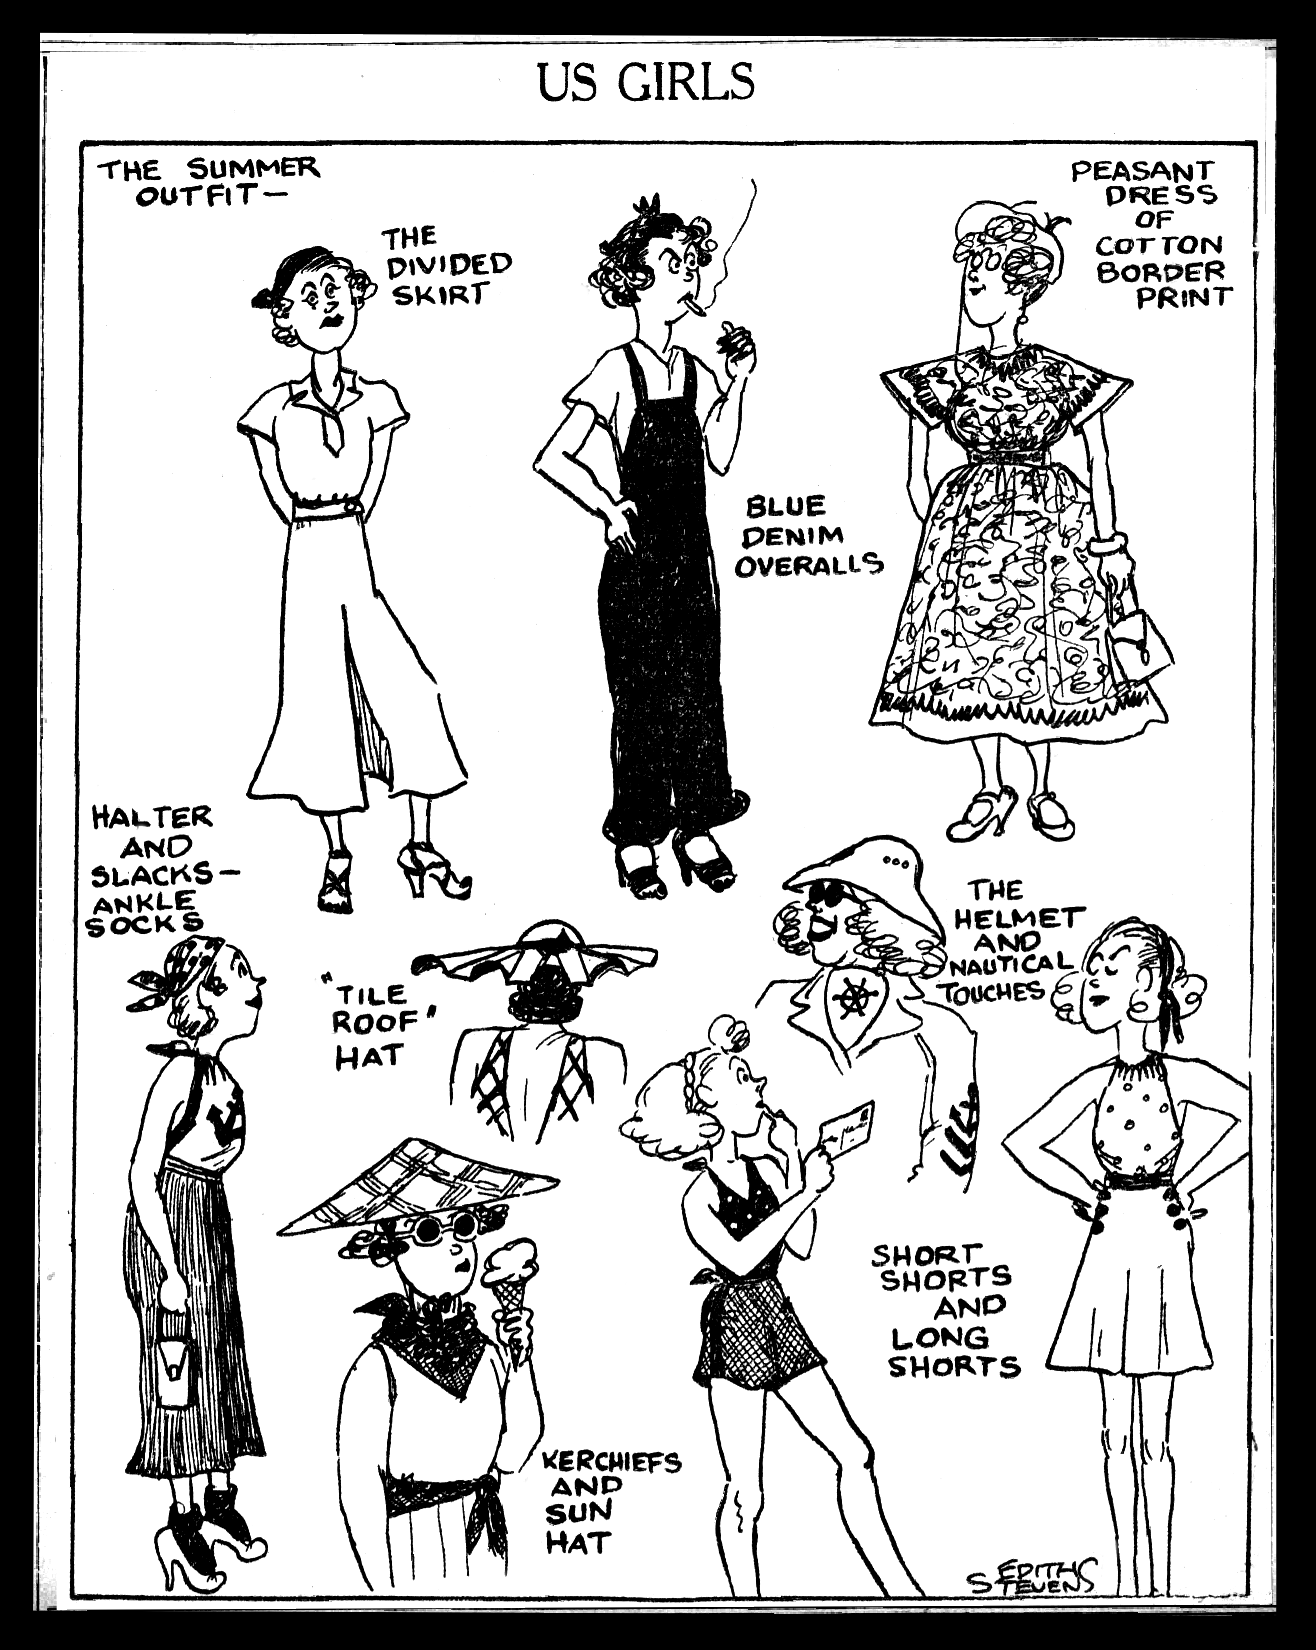 Us Girls: July 30, 1935